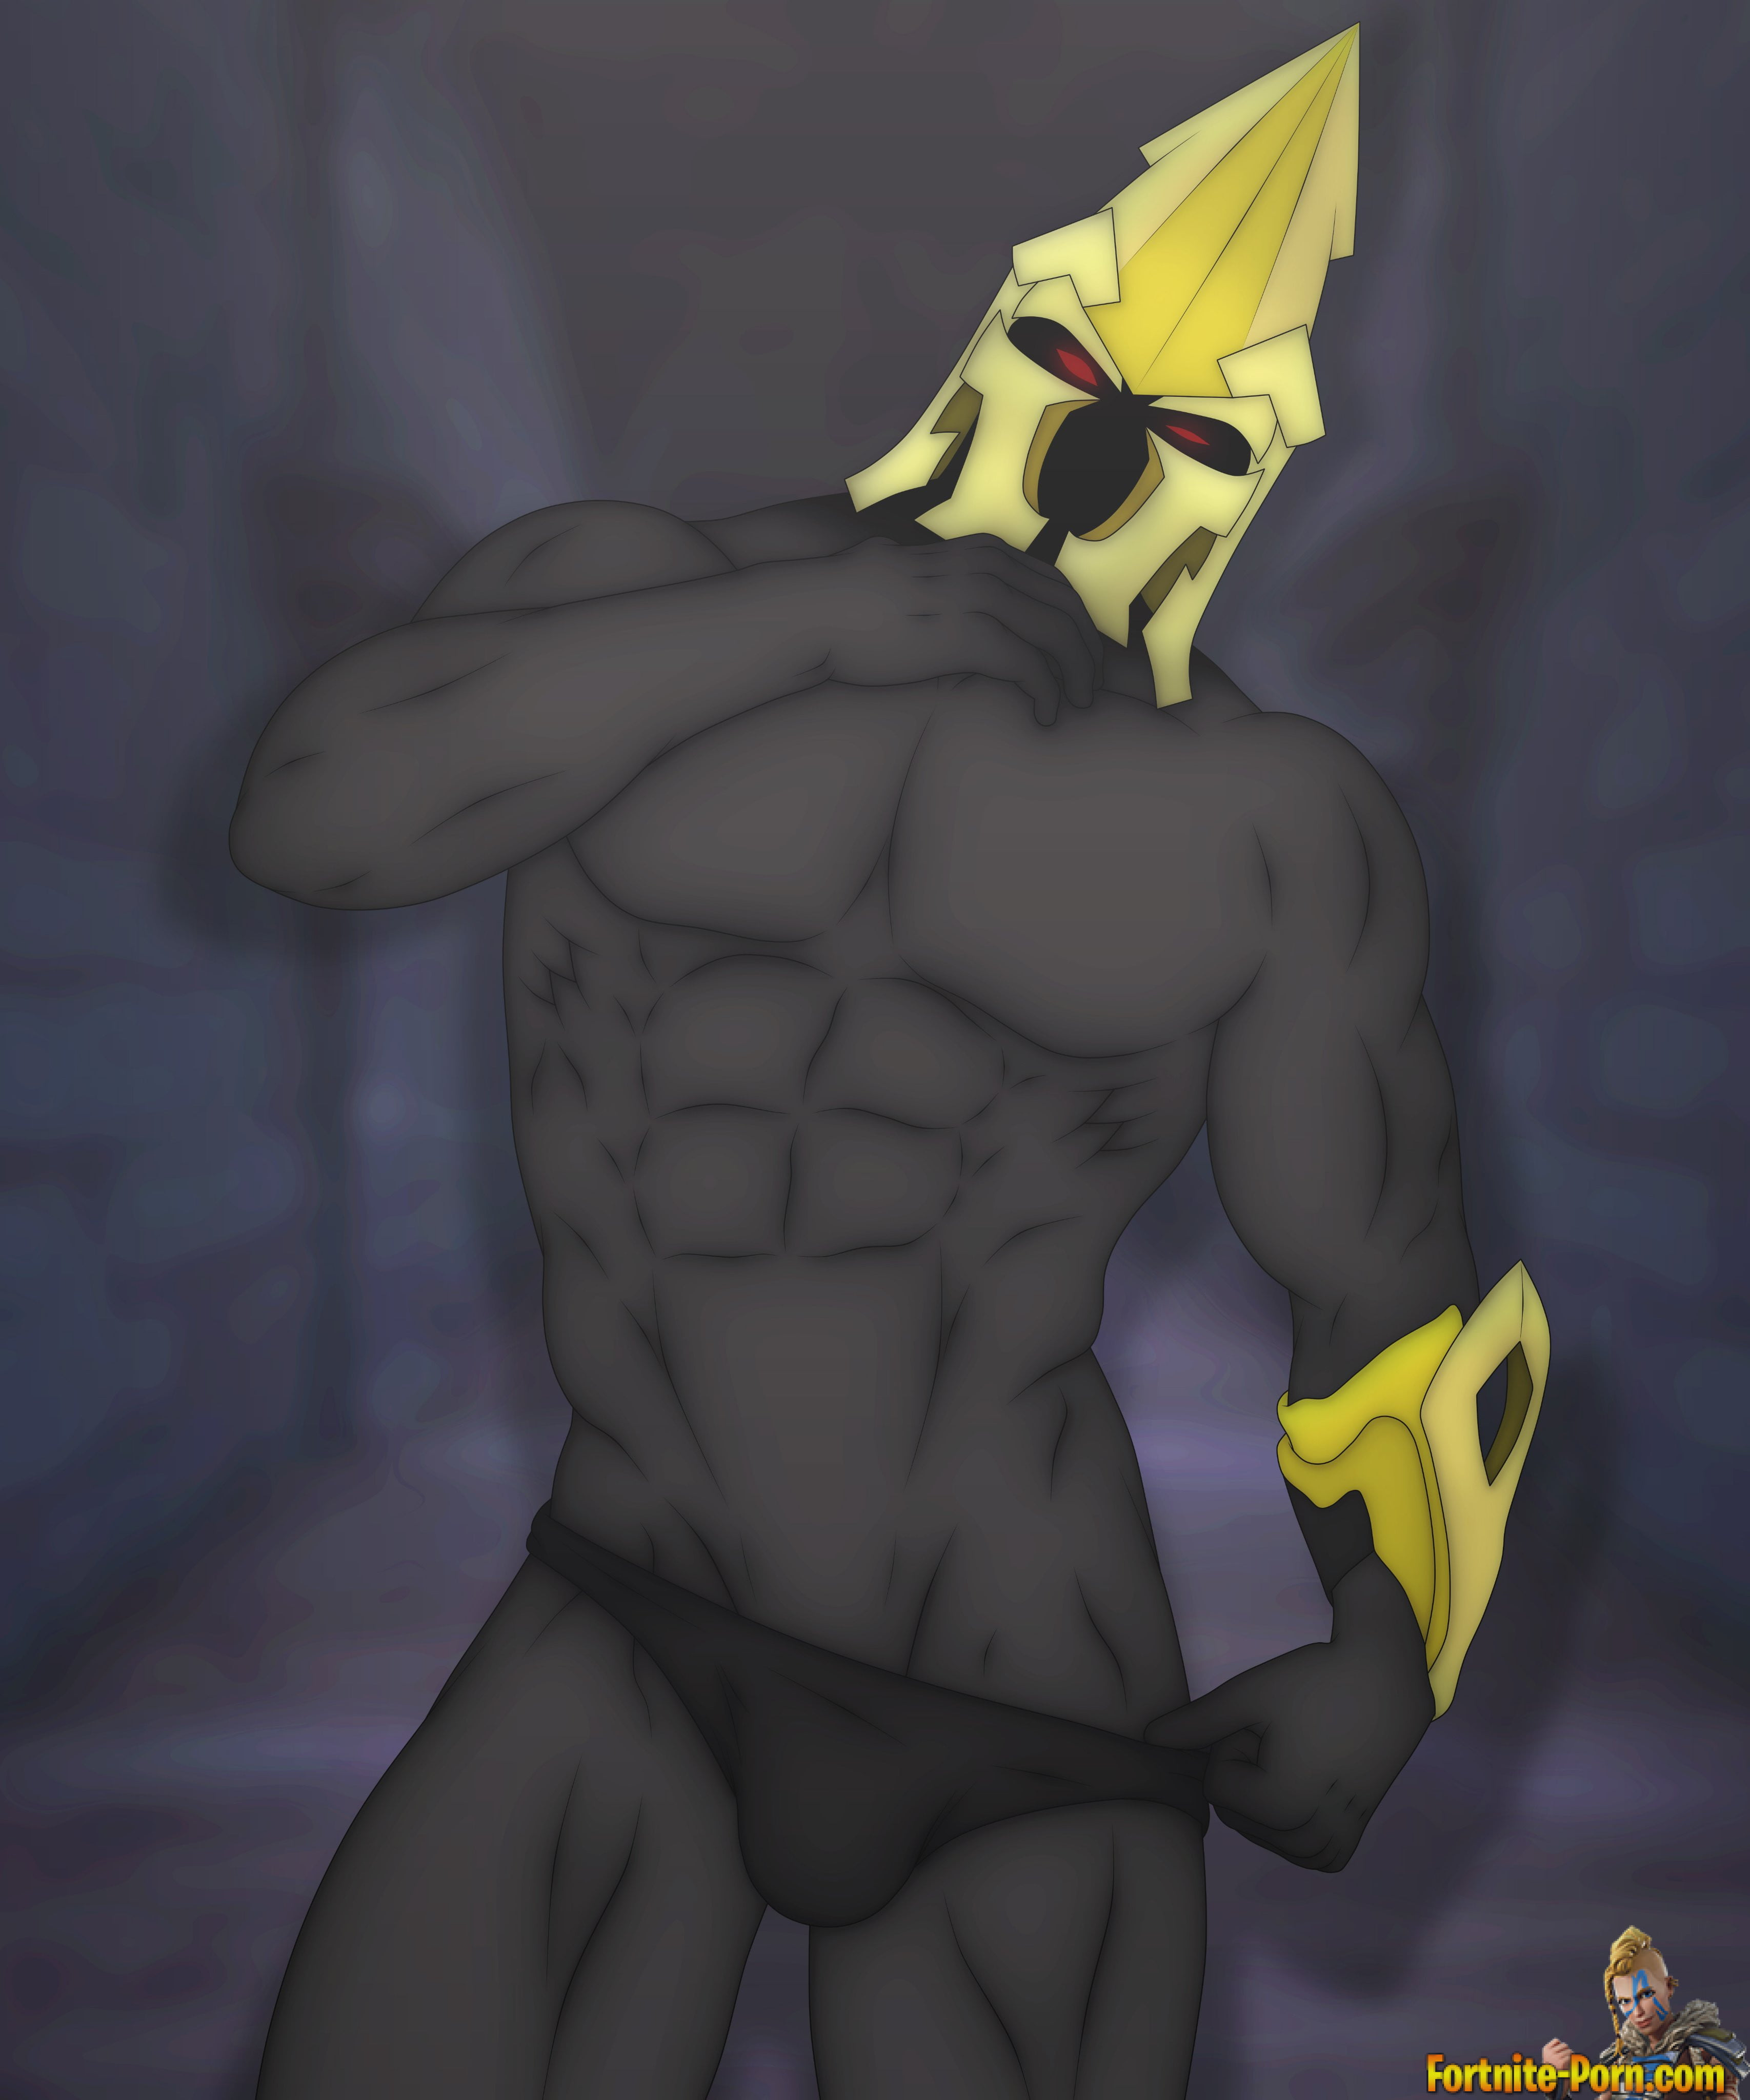 Assasin Animated Porn Gay ultima knight with abs stripping • fortnite porn